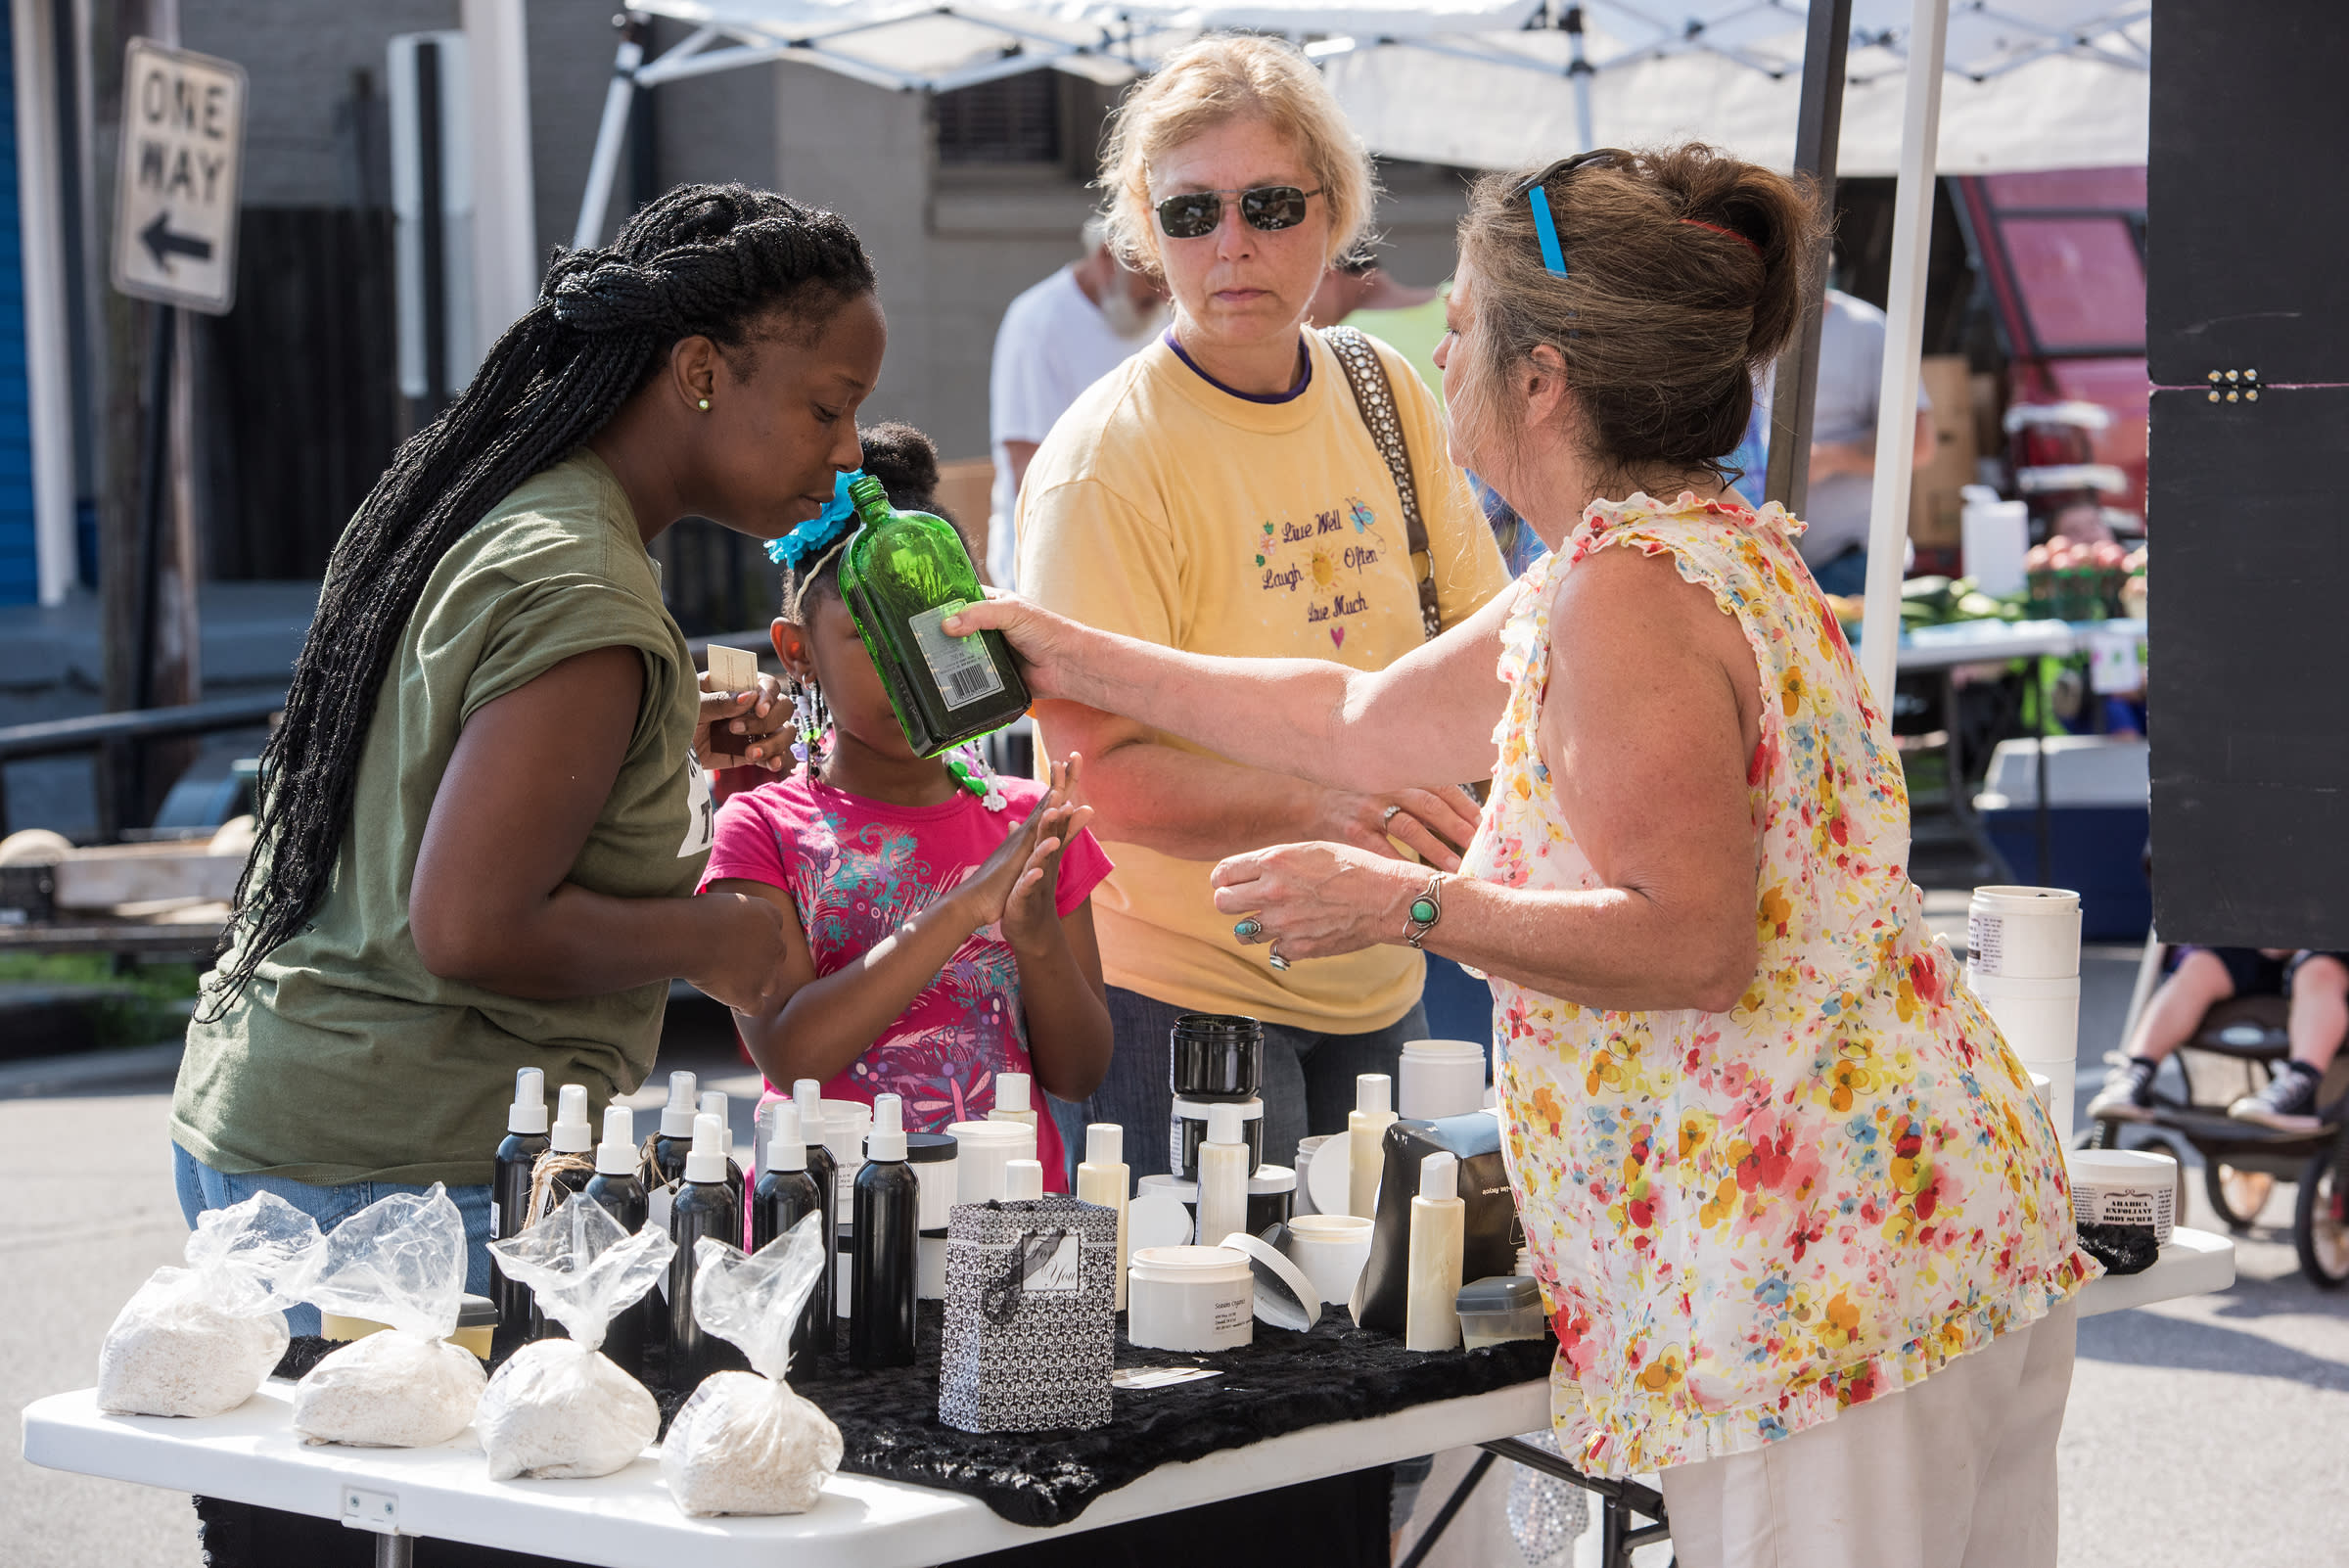 The New Albany Farmers Market, July 18, 2015 in New Albany, Ind. (Photo by Brian Bohannon)